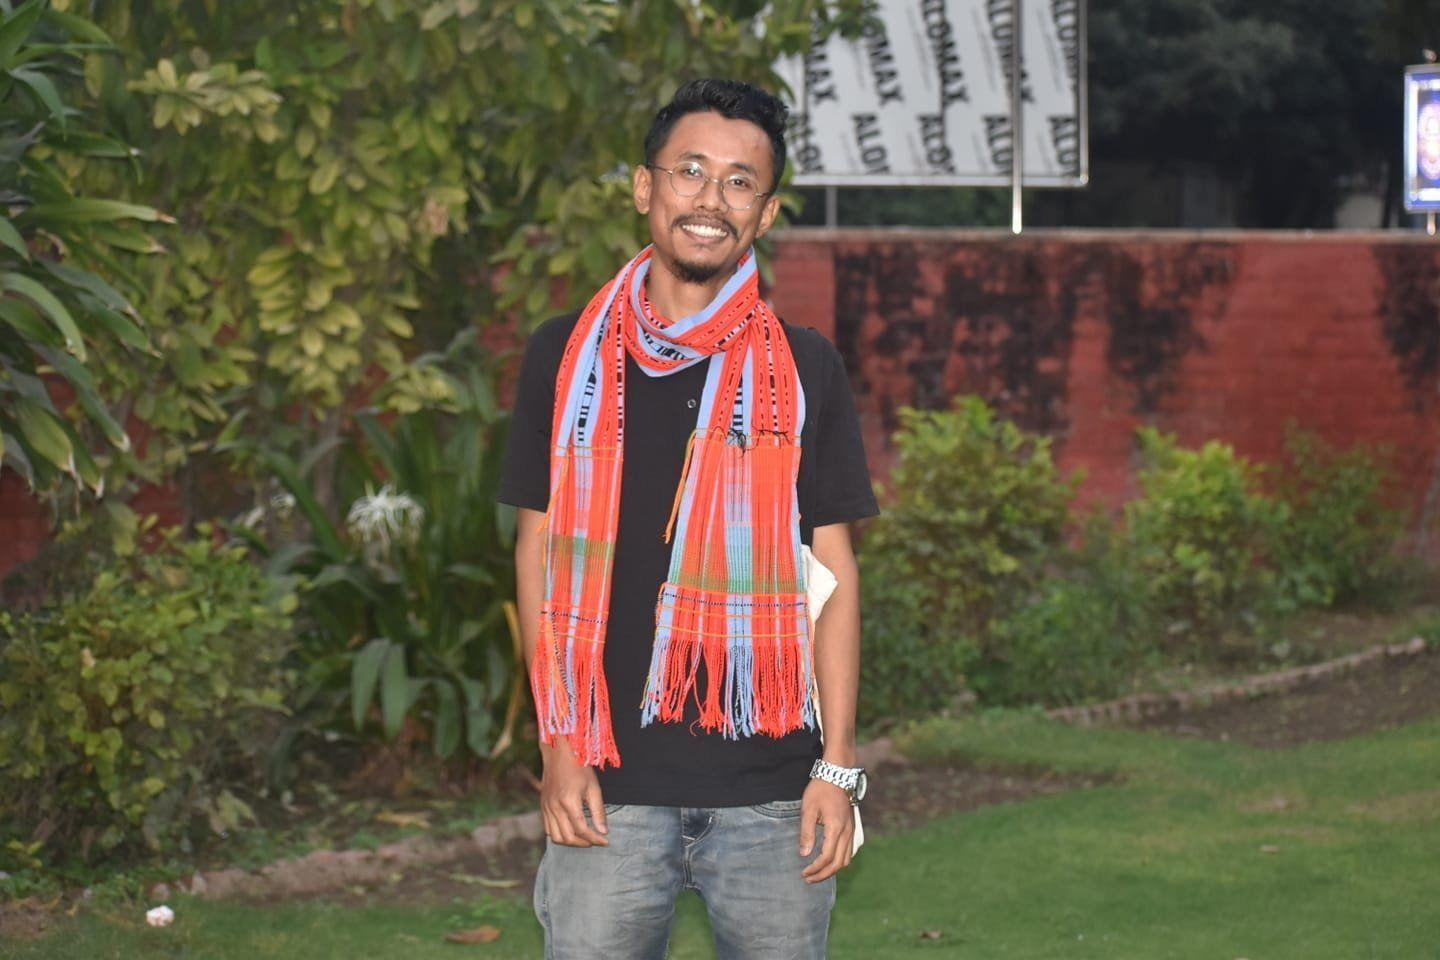 Arrested On Sedition Charges In Delhi, Police Take Student Leader To